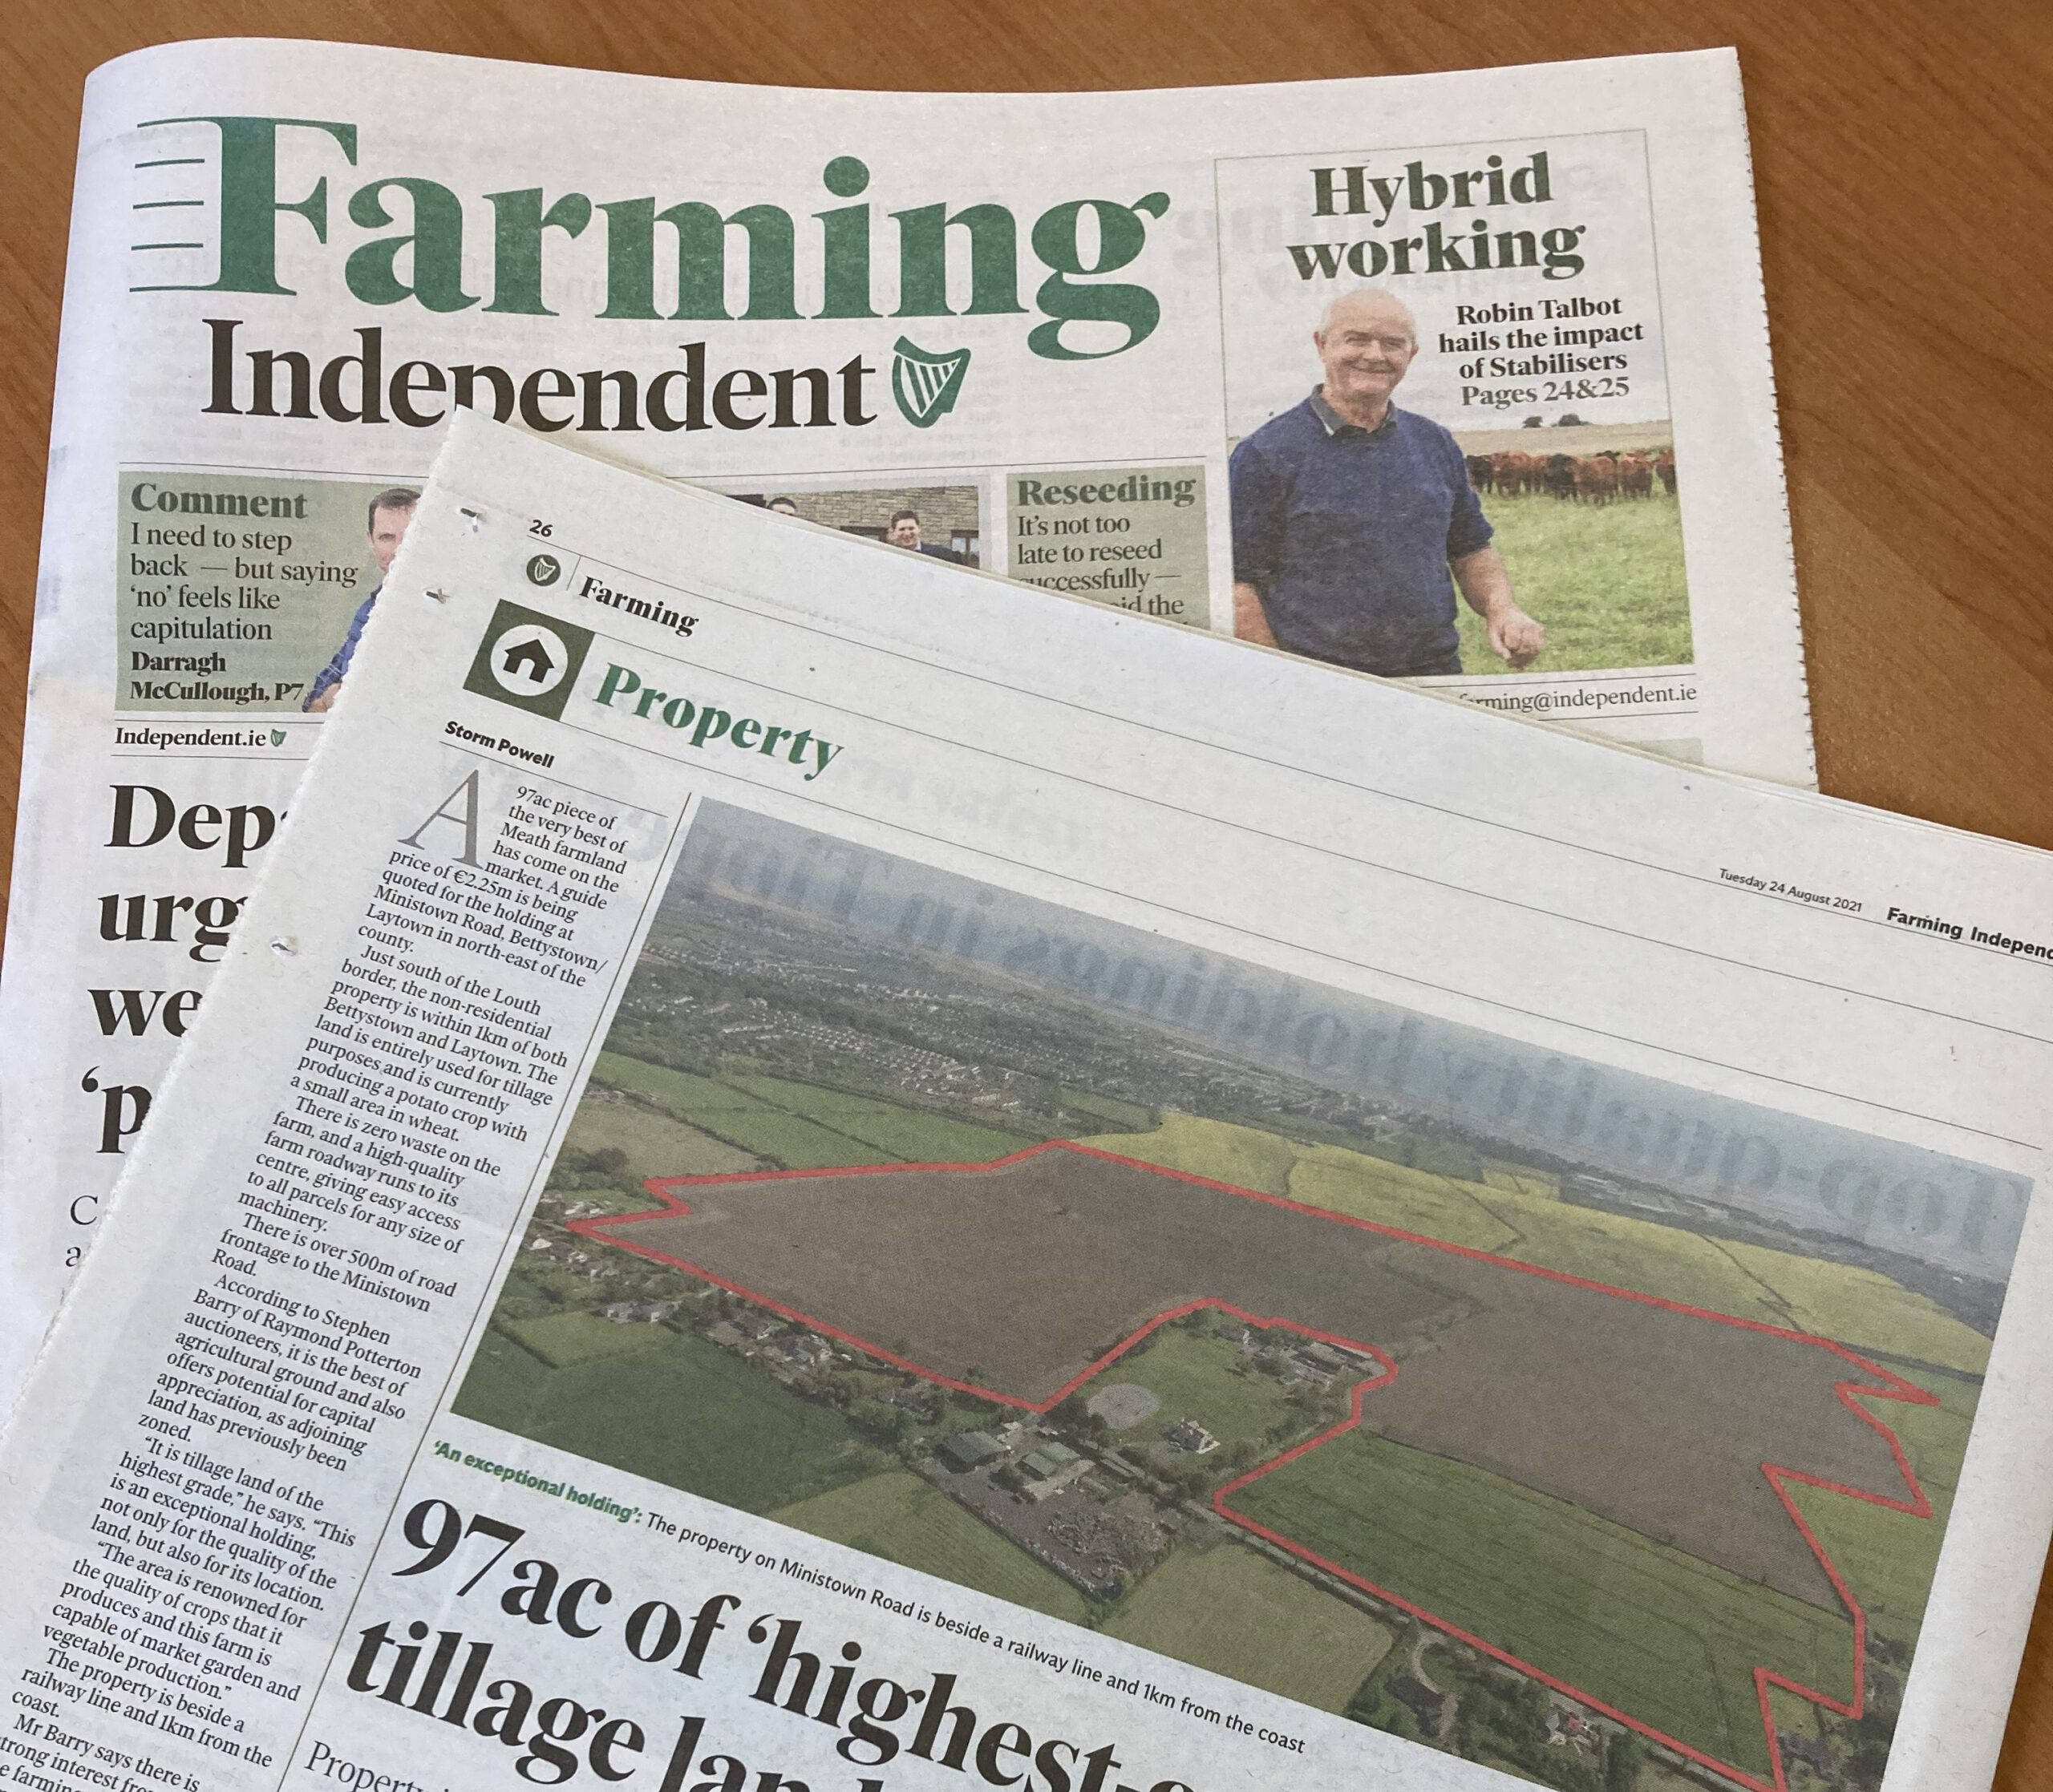 97ac of 'highest-grade' Meath tillage land guided at €2.25m